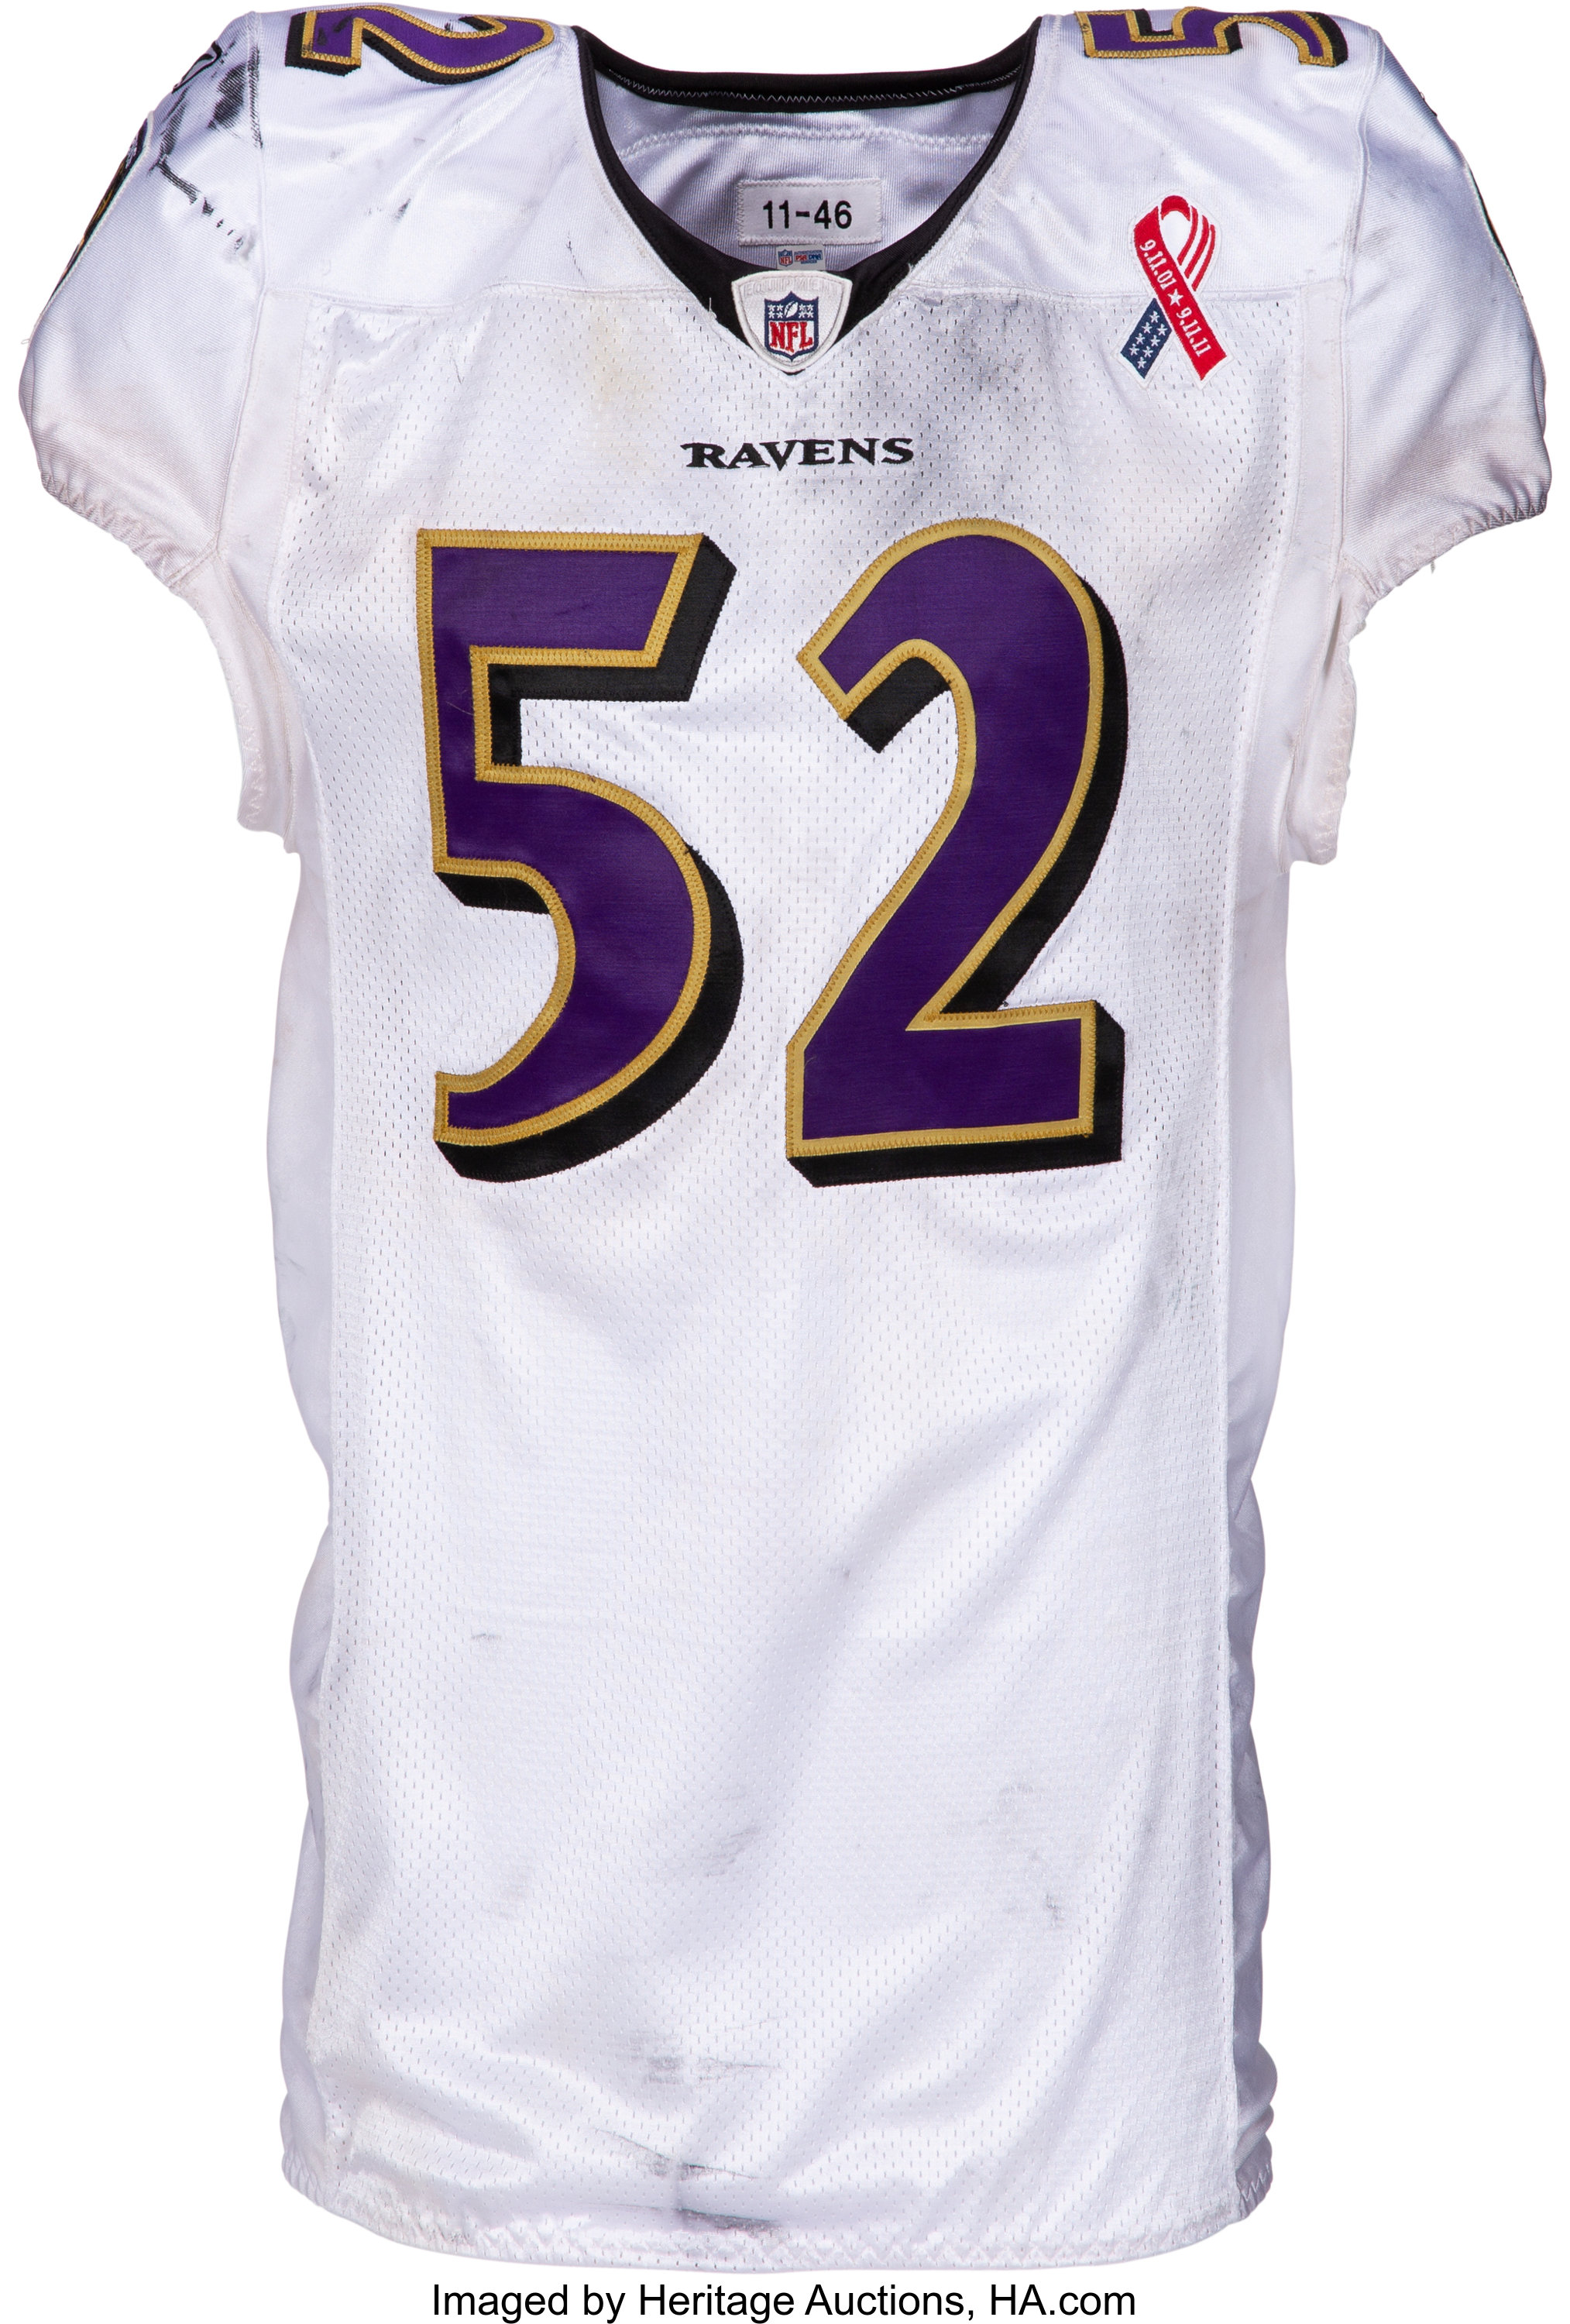 2011 Ray Lewis Game Worn Unwashed Baltimore Ravens Jersey With Lot 53090 Heritage Auctions